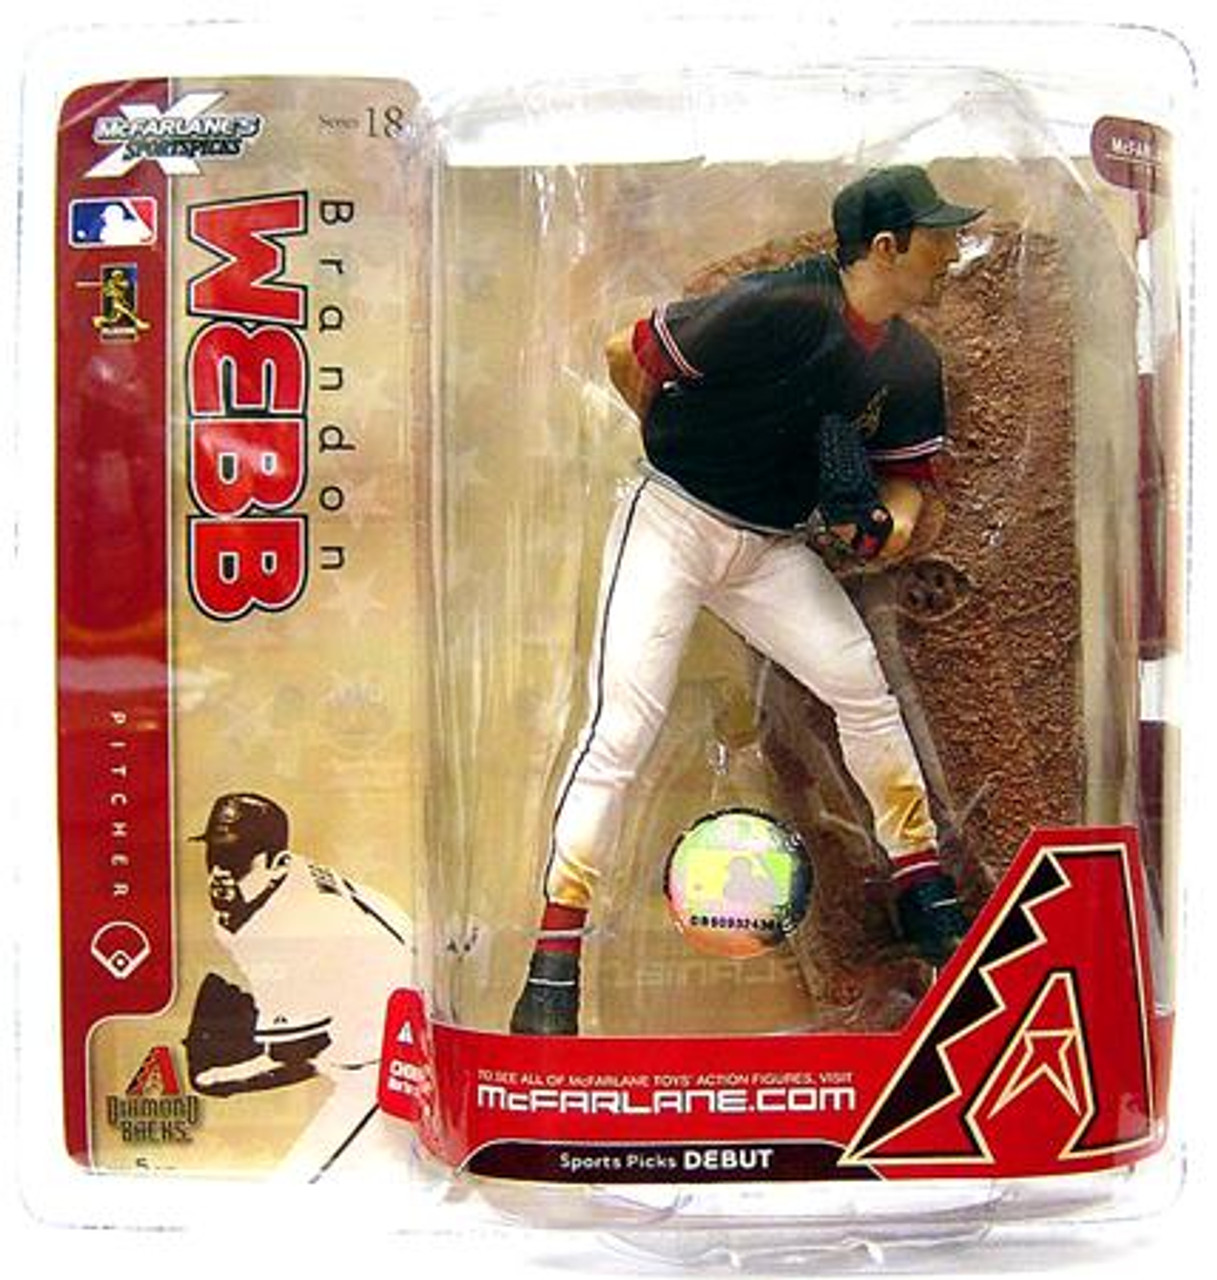 McFarlane Toys MLB Arizona Diamondbacks Sports Picks Series 18 Brandon Webb Action Figure [Black Jersey Variant]